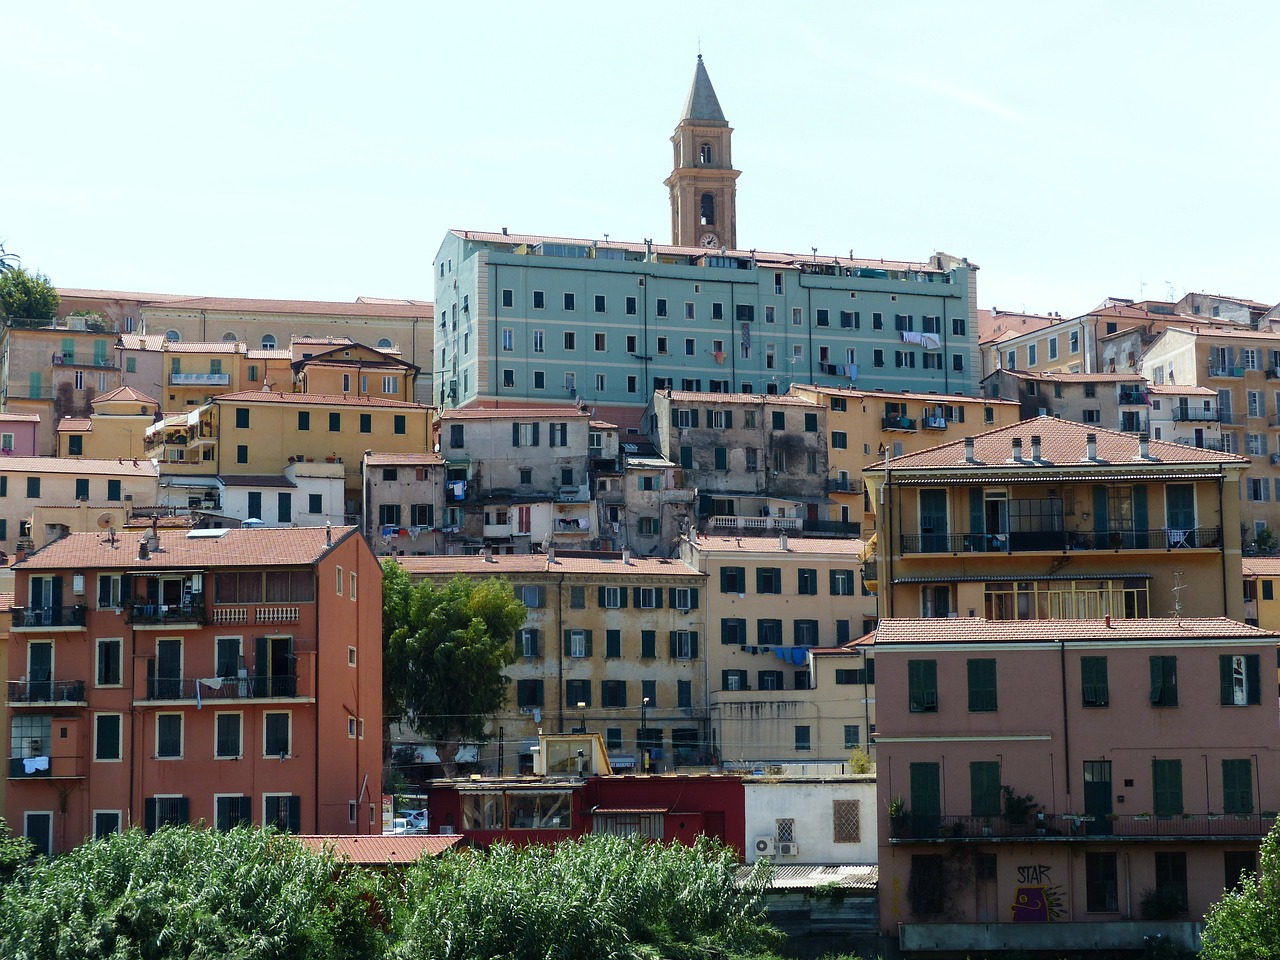 ventimiglia old town roofs free photo